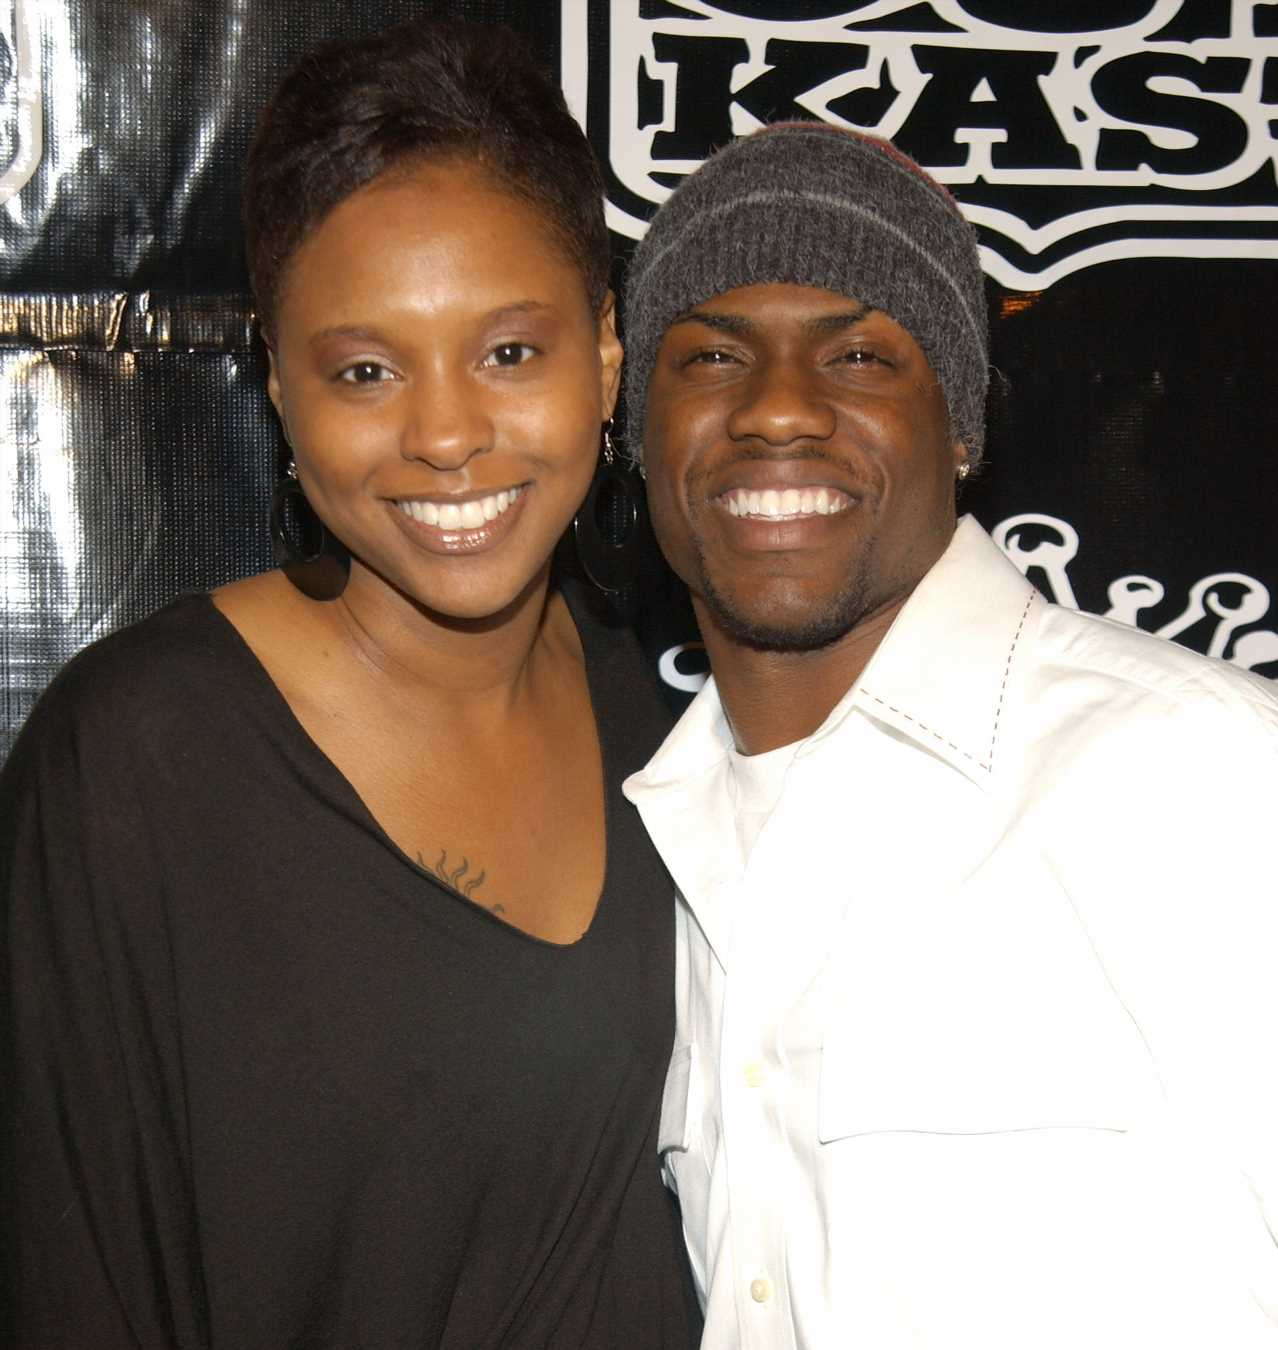 Kevin Hart's Ex-Wife Torrei Says He Is Not Homophobic: 'He Was Just Making a Joke'